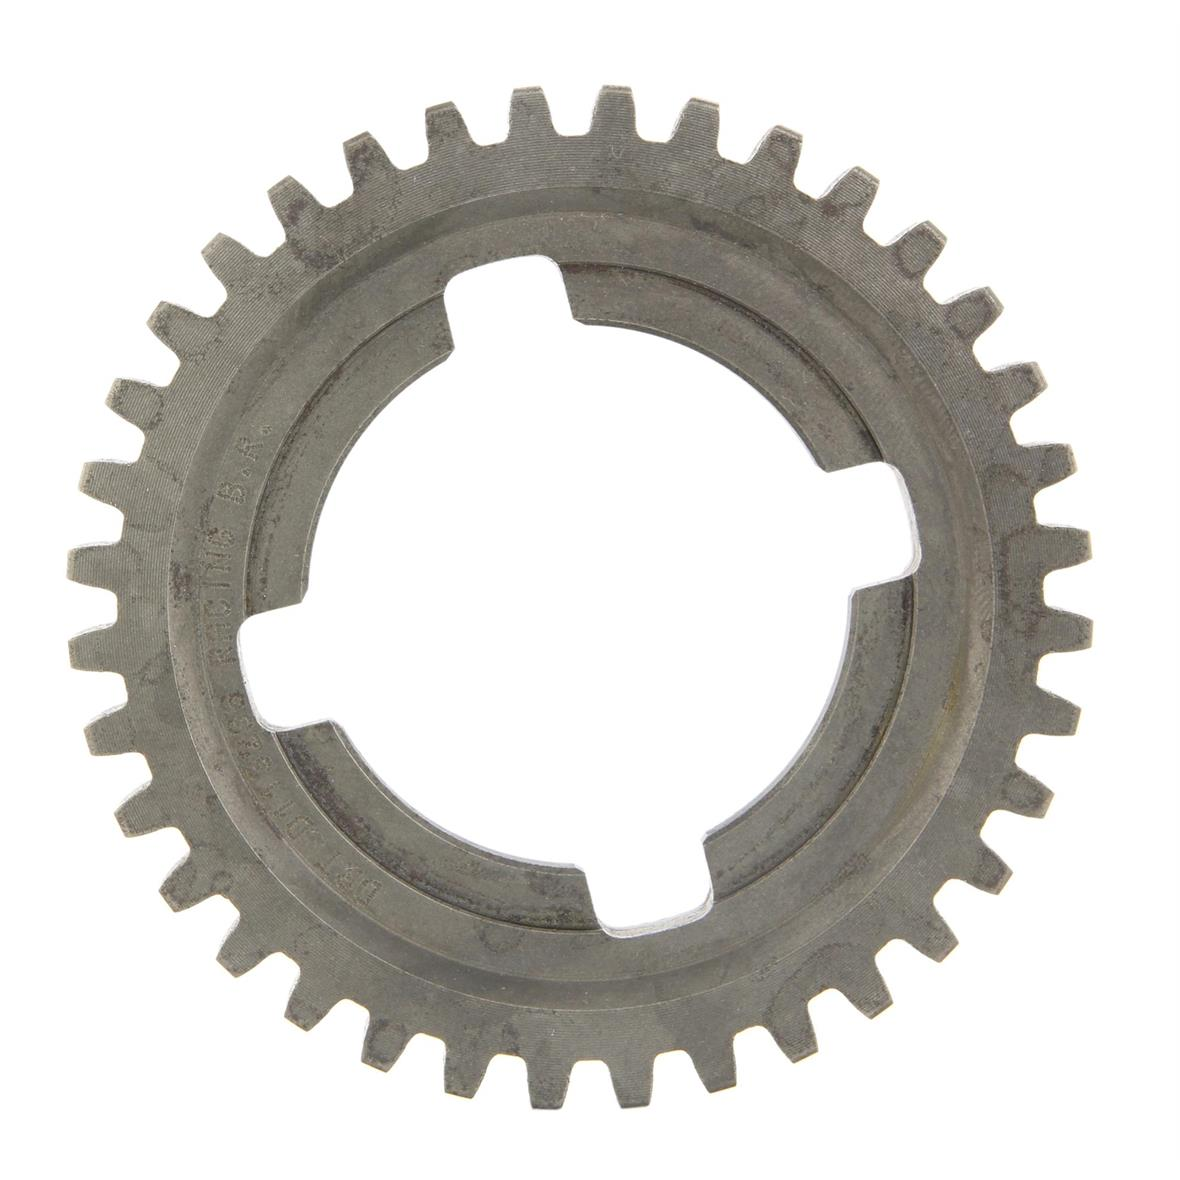 "Product Image for 'Gear Cog 36 teeth 4th gear DRT 291 f1 PX old /​ ""PX Lusso""Title'"